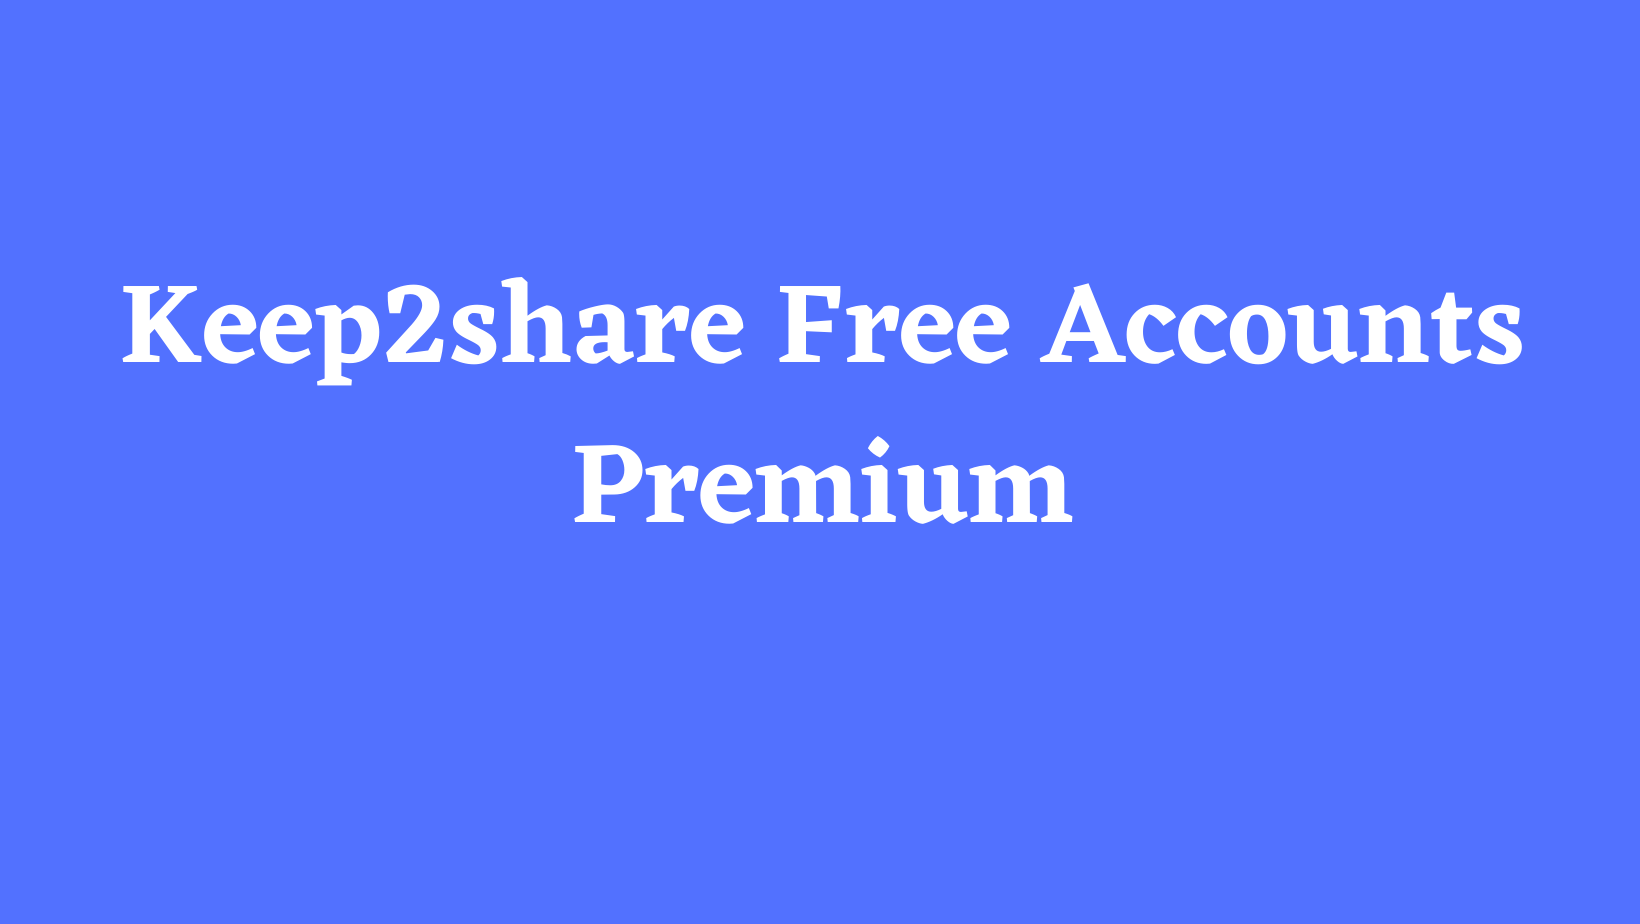 Keep2share Free Accounts Premium